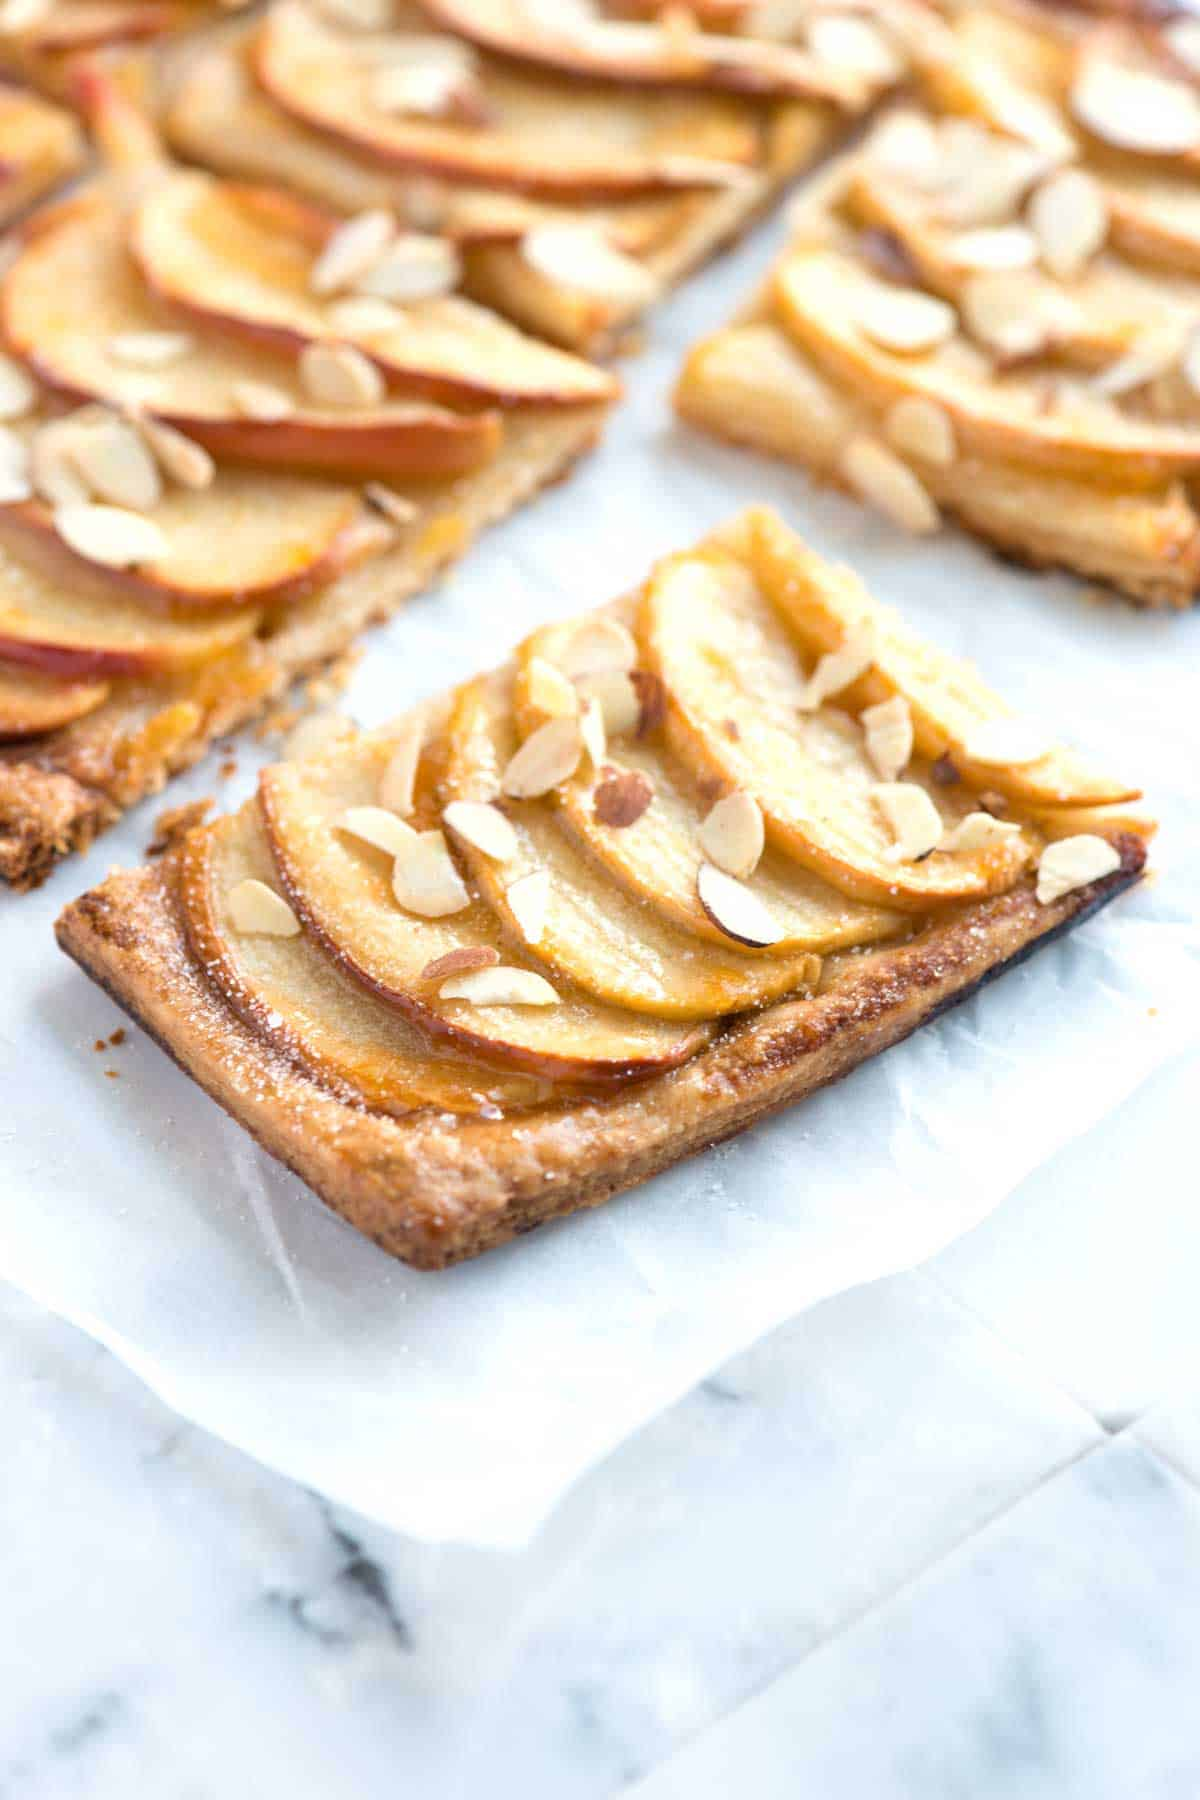 How to Make an Apple Tart